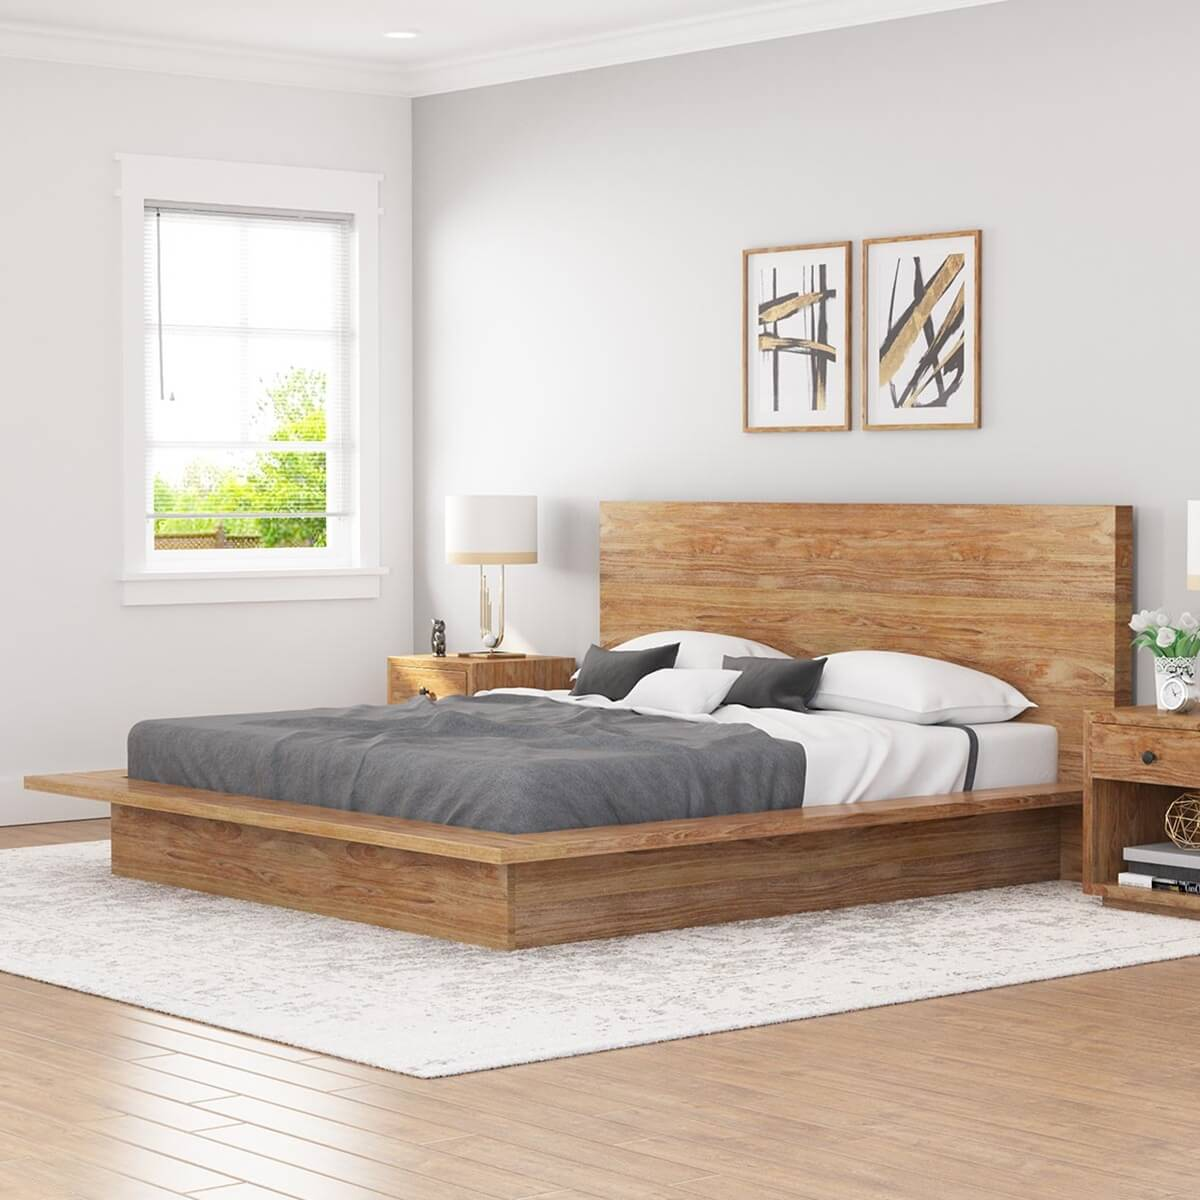 Picture of: Britain Low Height Farmhouse Teak Wood Platform Bed Frame With Headboard